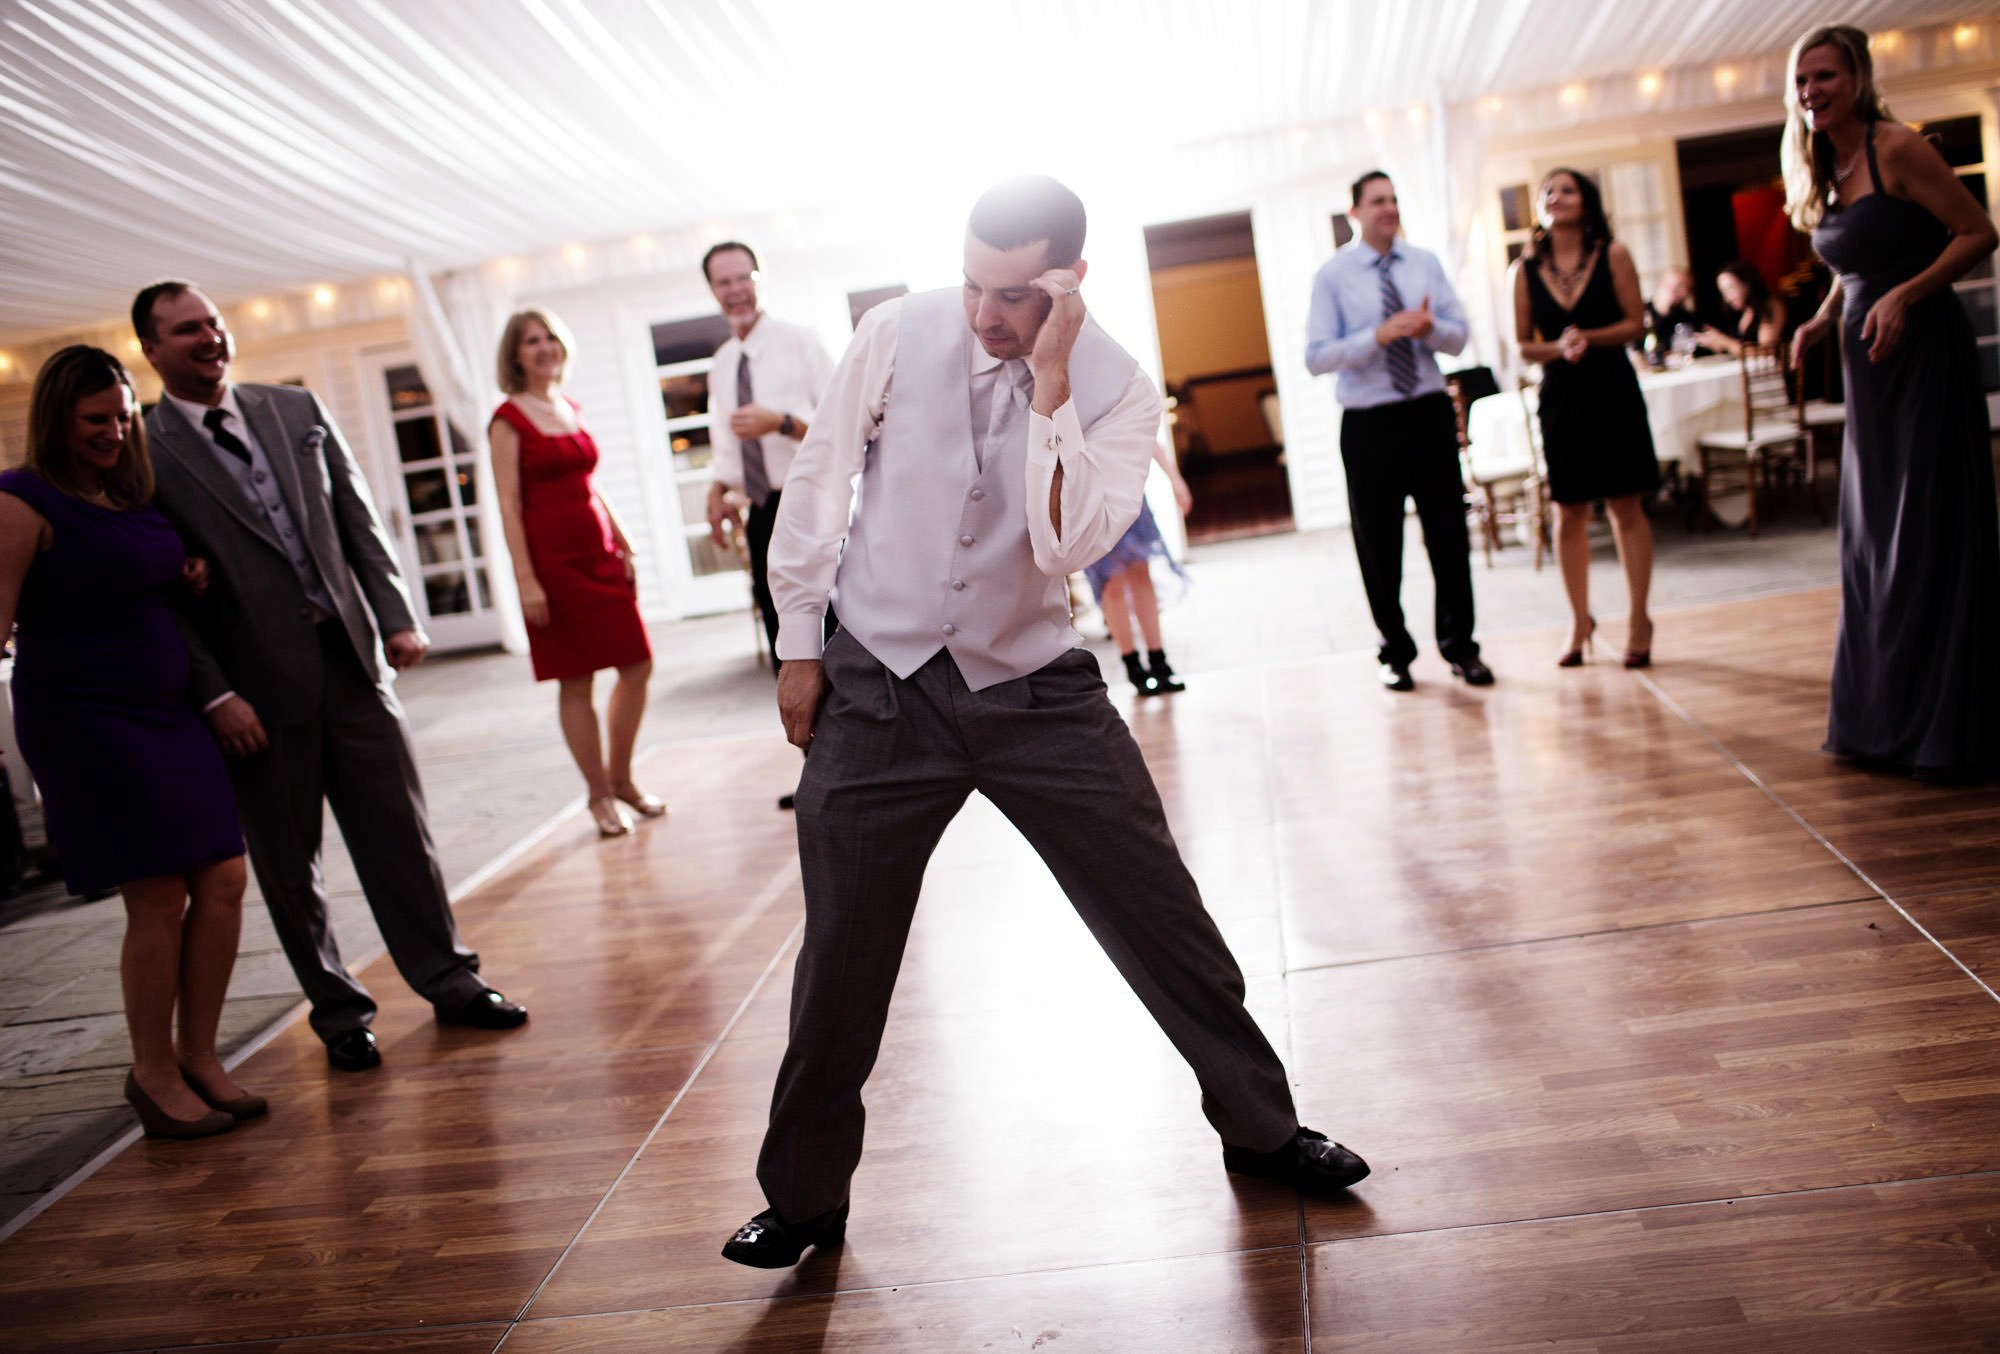 The groom dances during the wedding reception at Comus Inn.